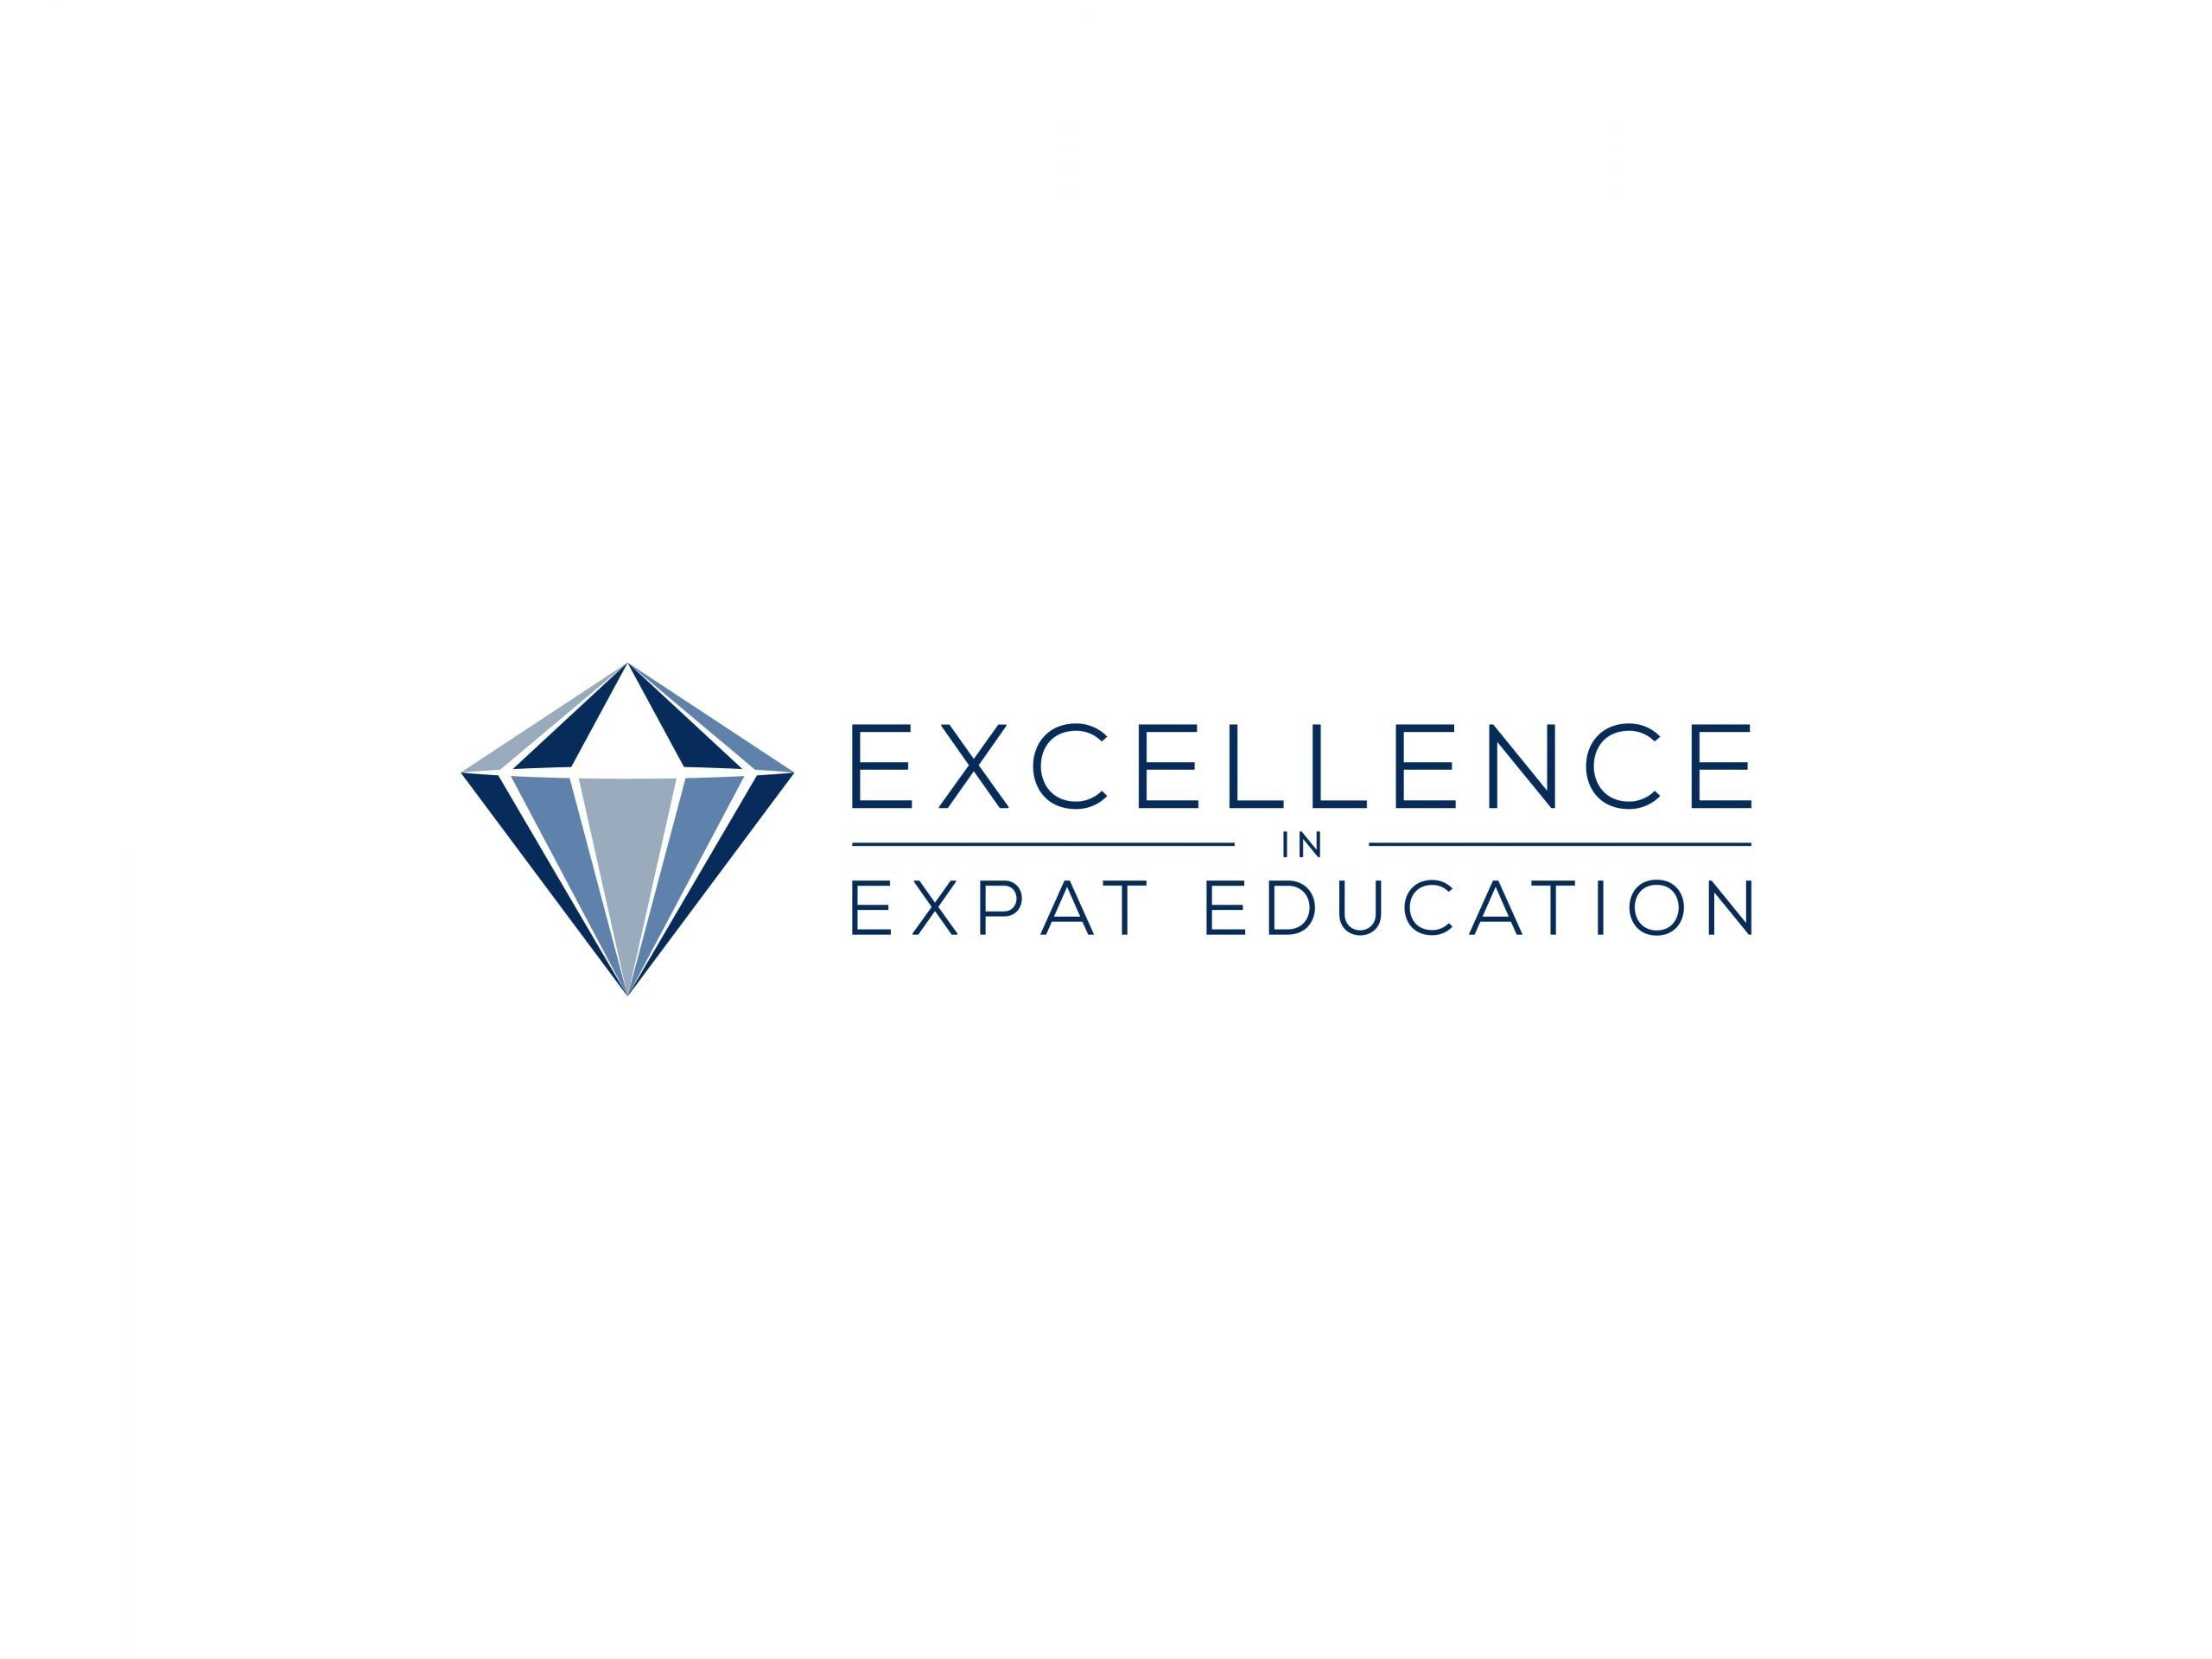 Excellence in Expat Education